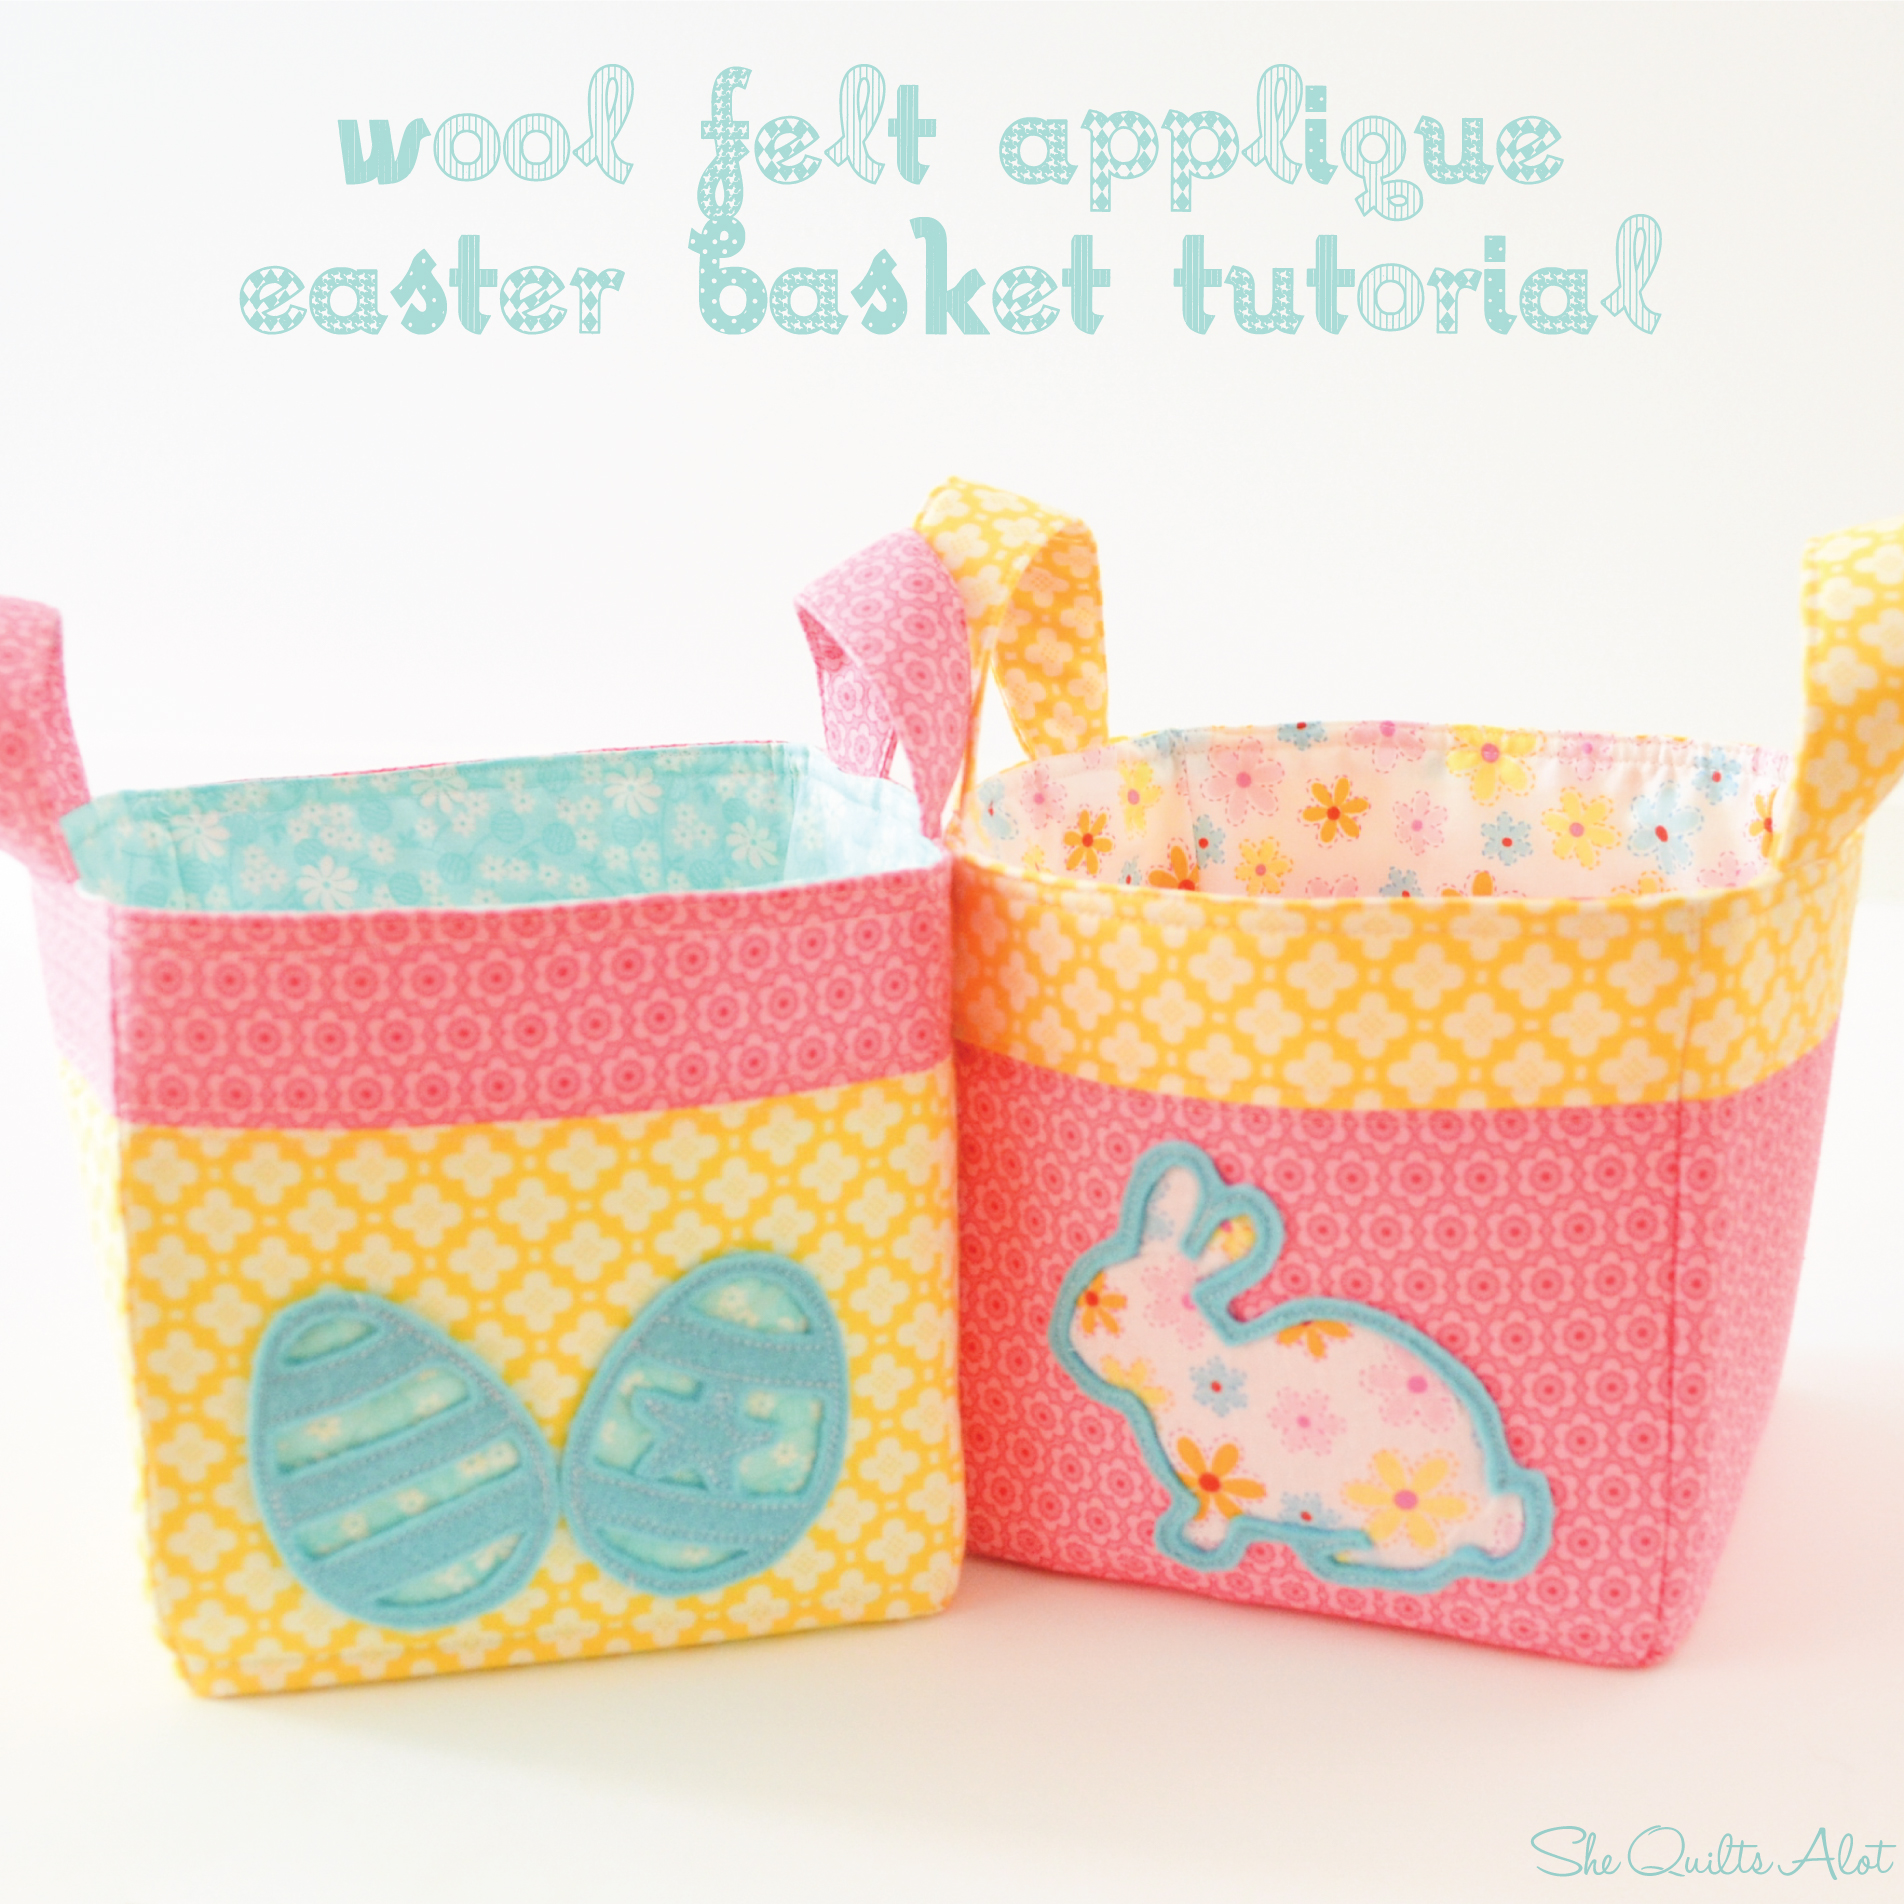 Wool Felt Applique Easter Baskets Tutorial She Quilts Alot